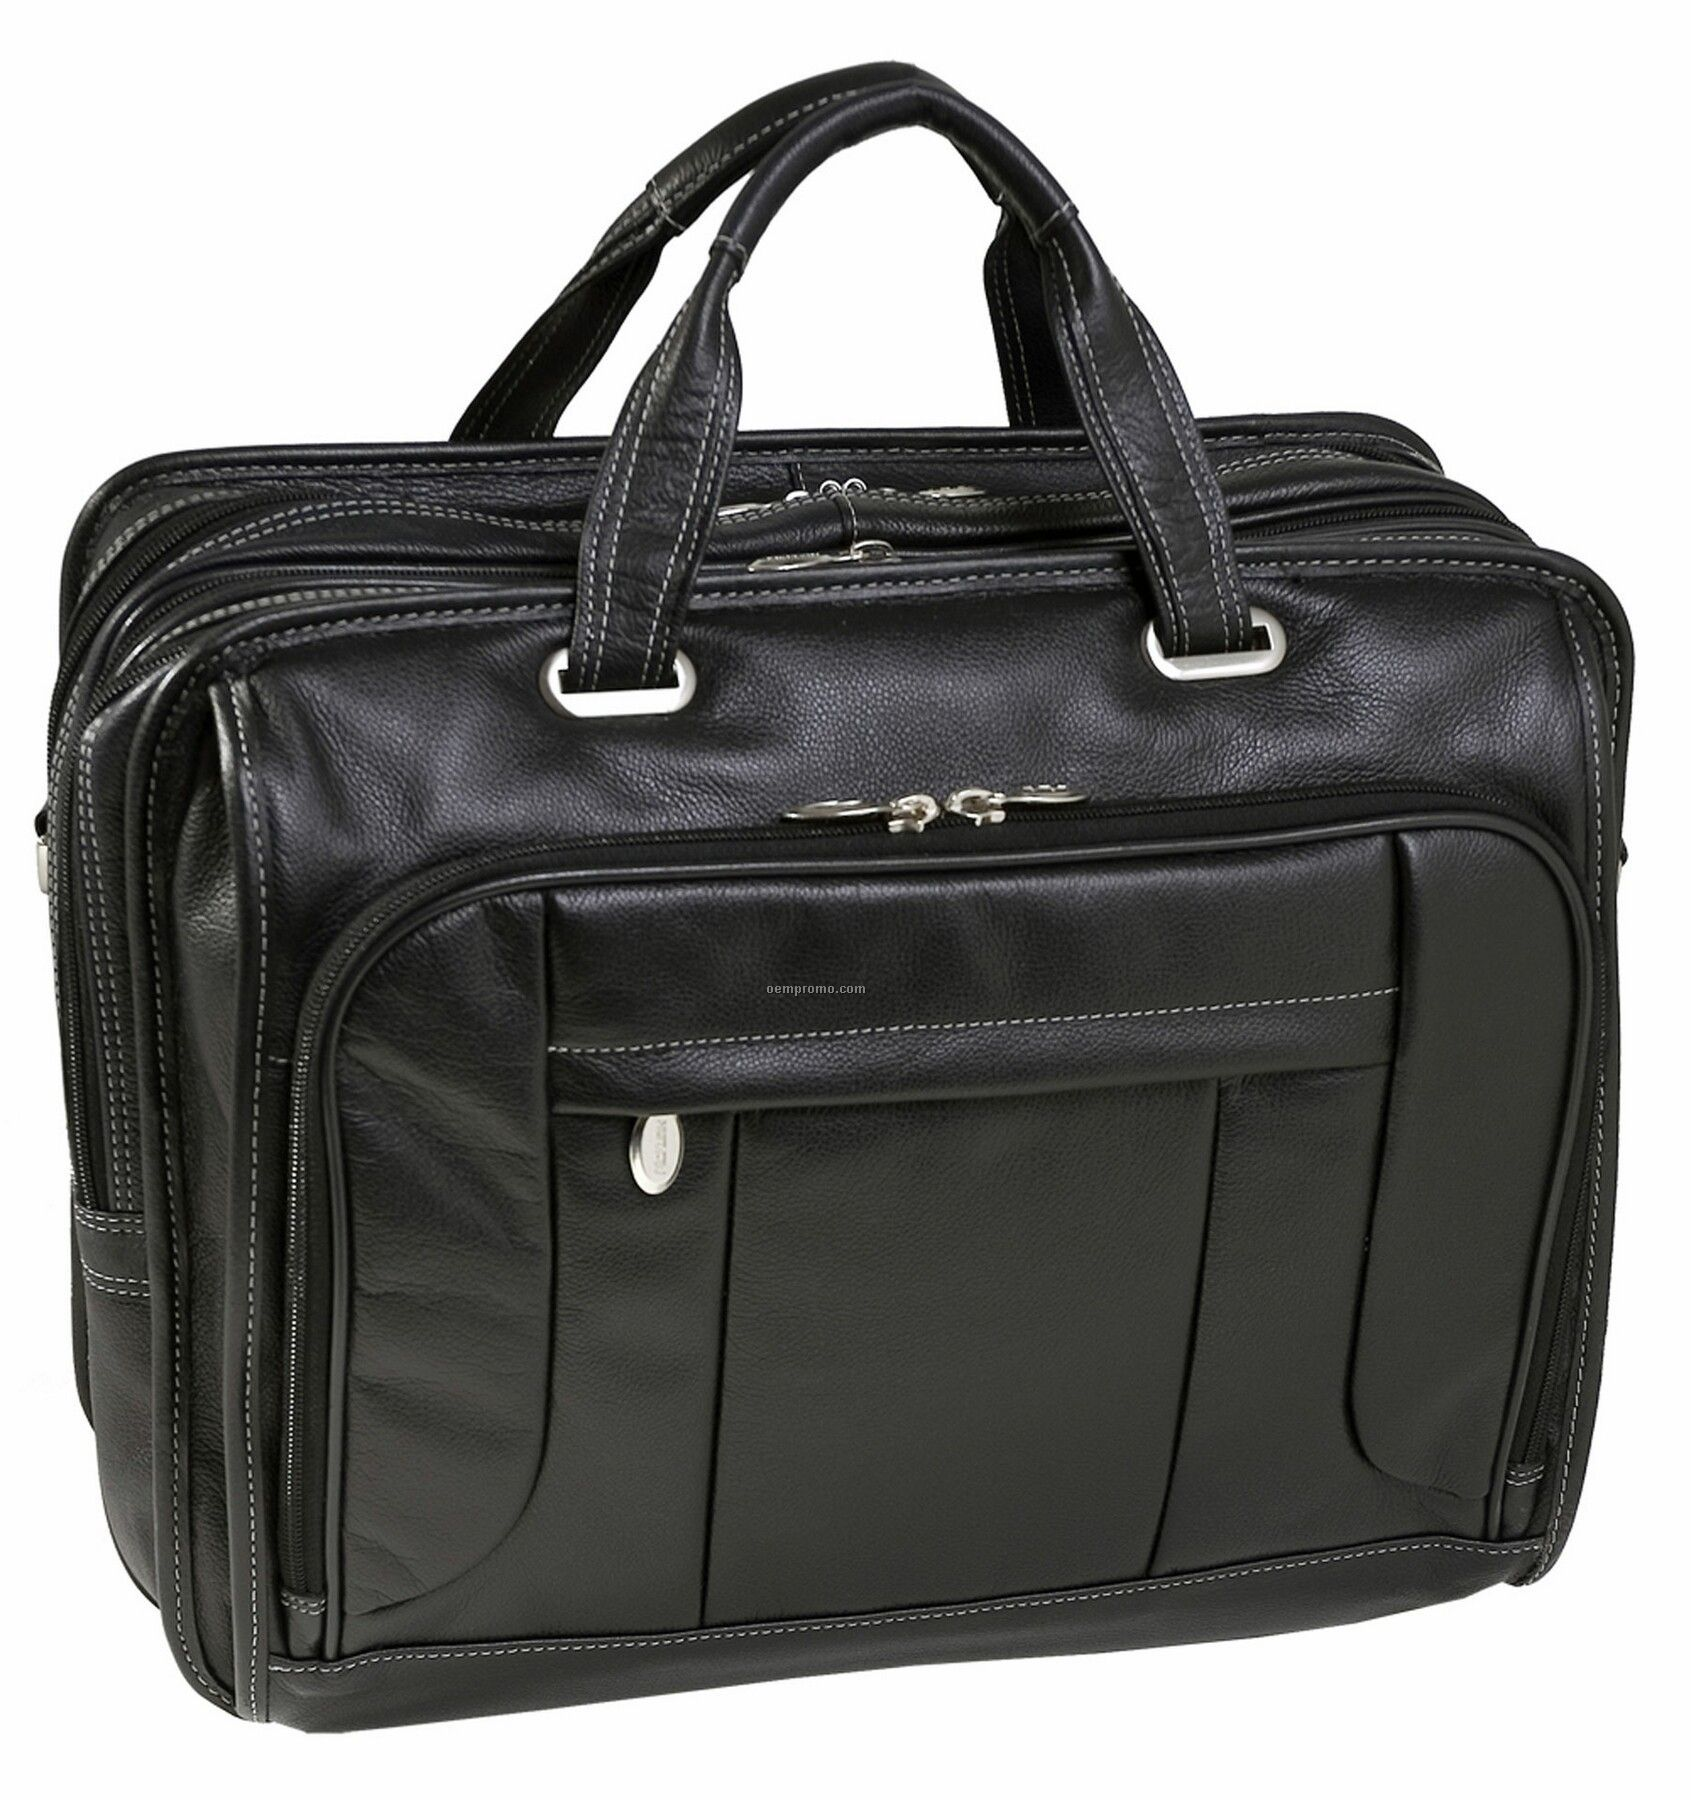 "River West Leather Checkpoint Friendly 17"" Laptop Case - Black"